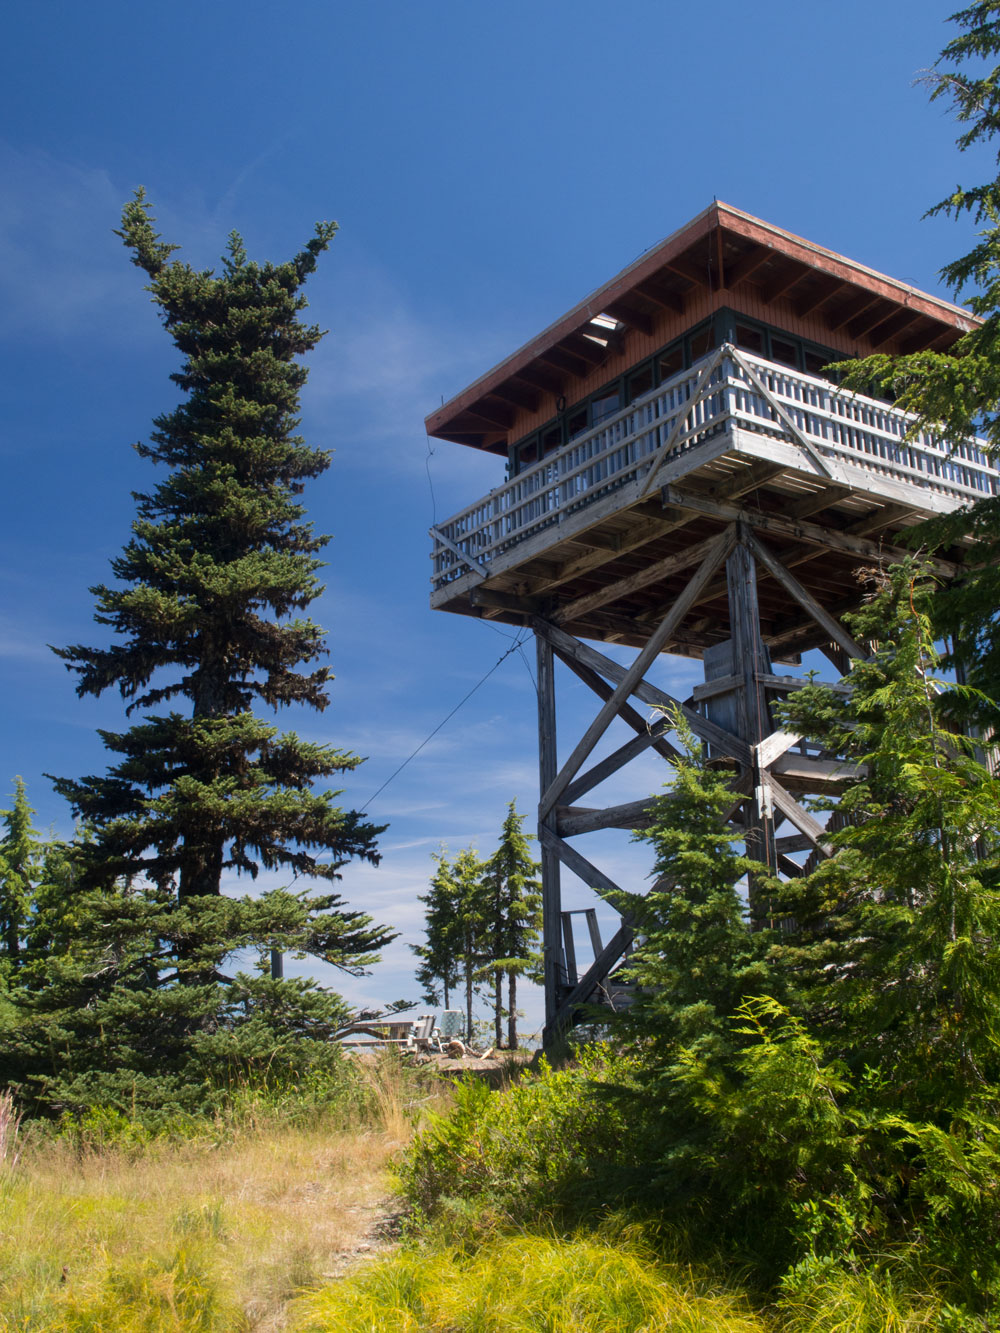 Indian Ridge Fire Tower